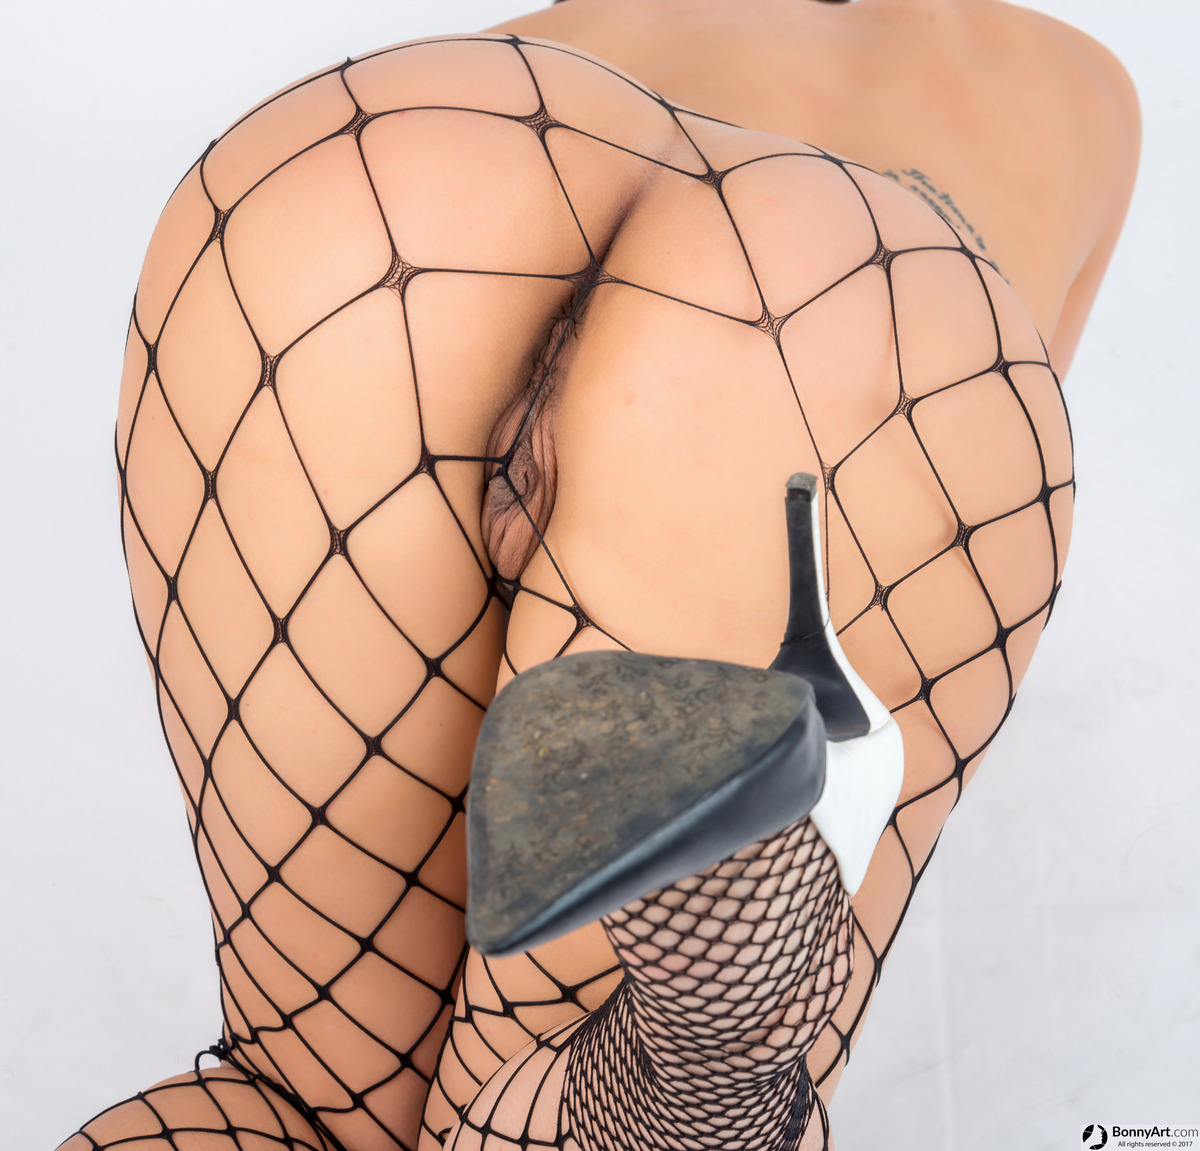 Awesome Naked Large Pussy Bottom with Fishnets